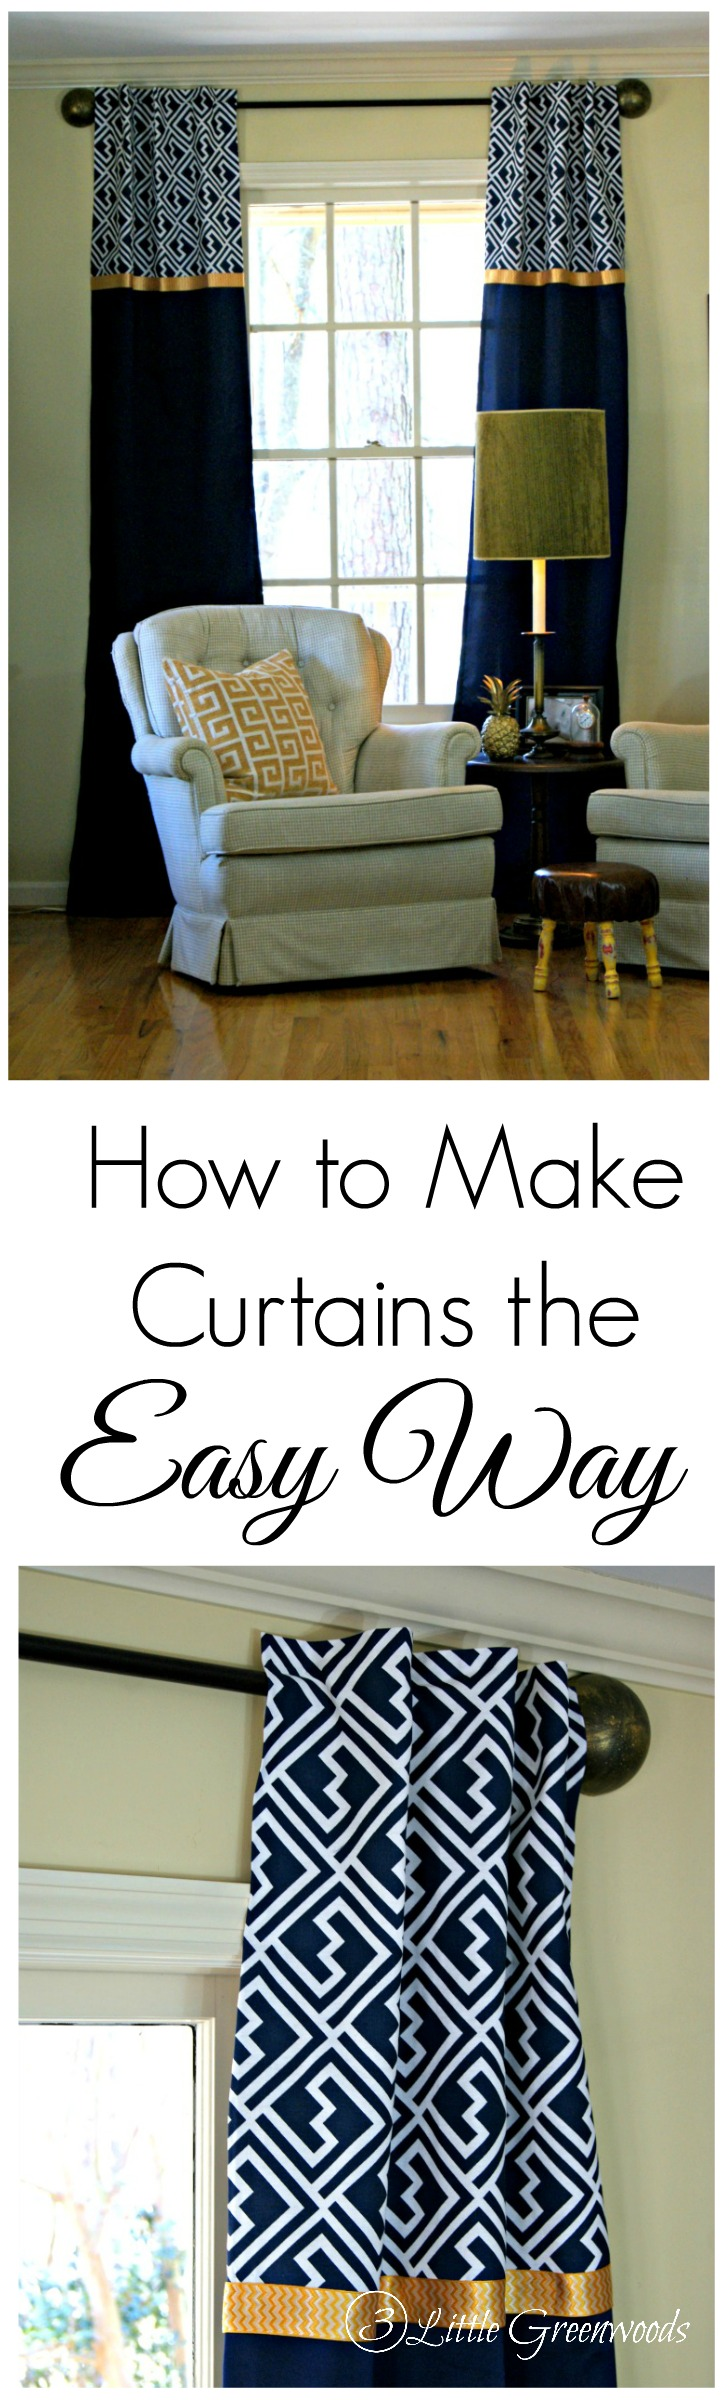 Make Curtains How To Make Curtains The Easy Way